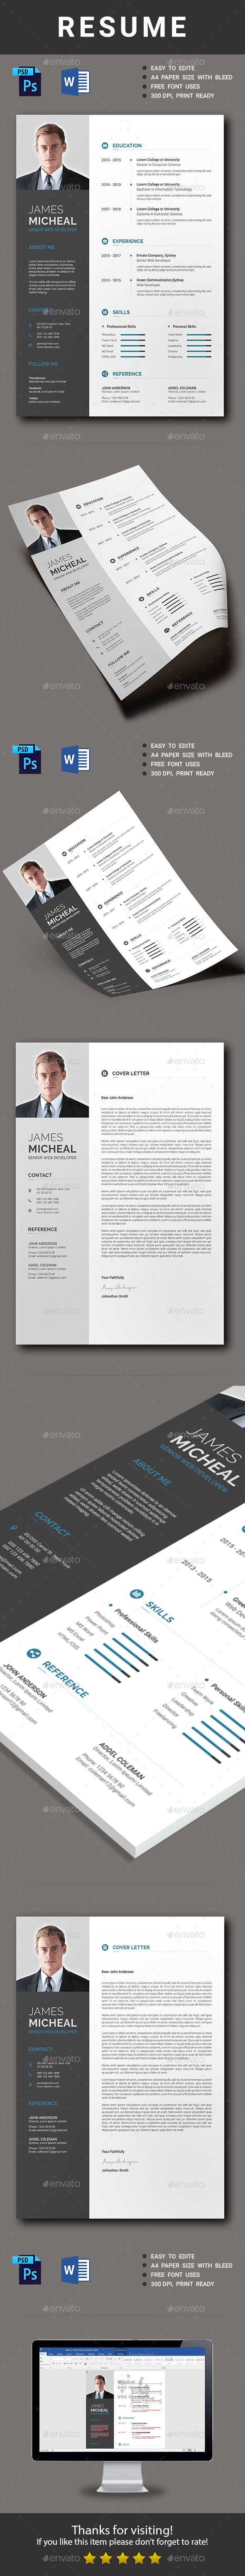 tagsBusiness infographic Professional Resume Template forBusiness